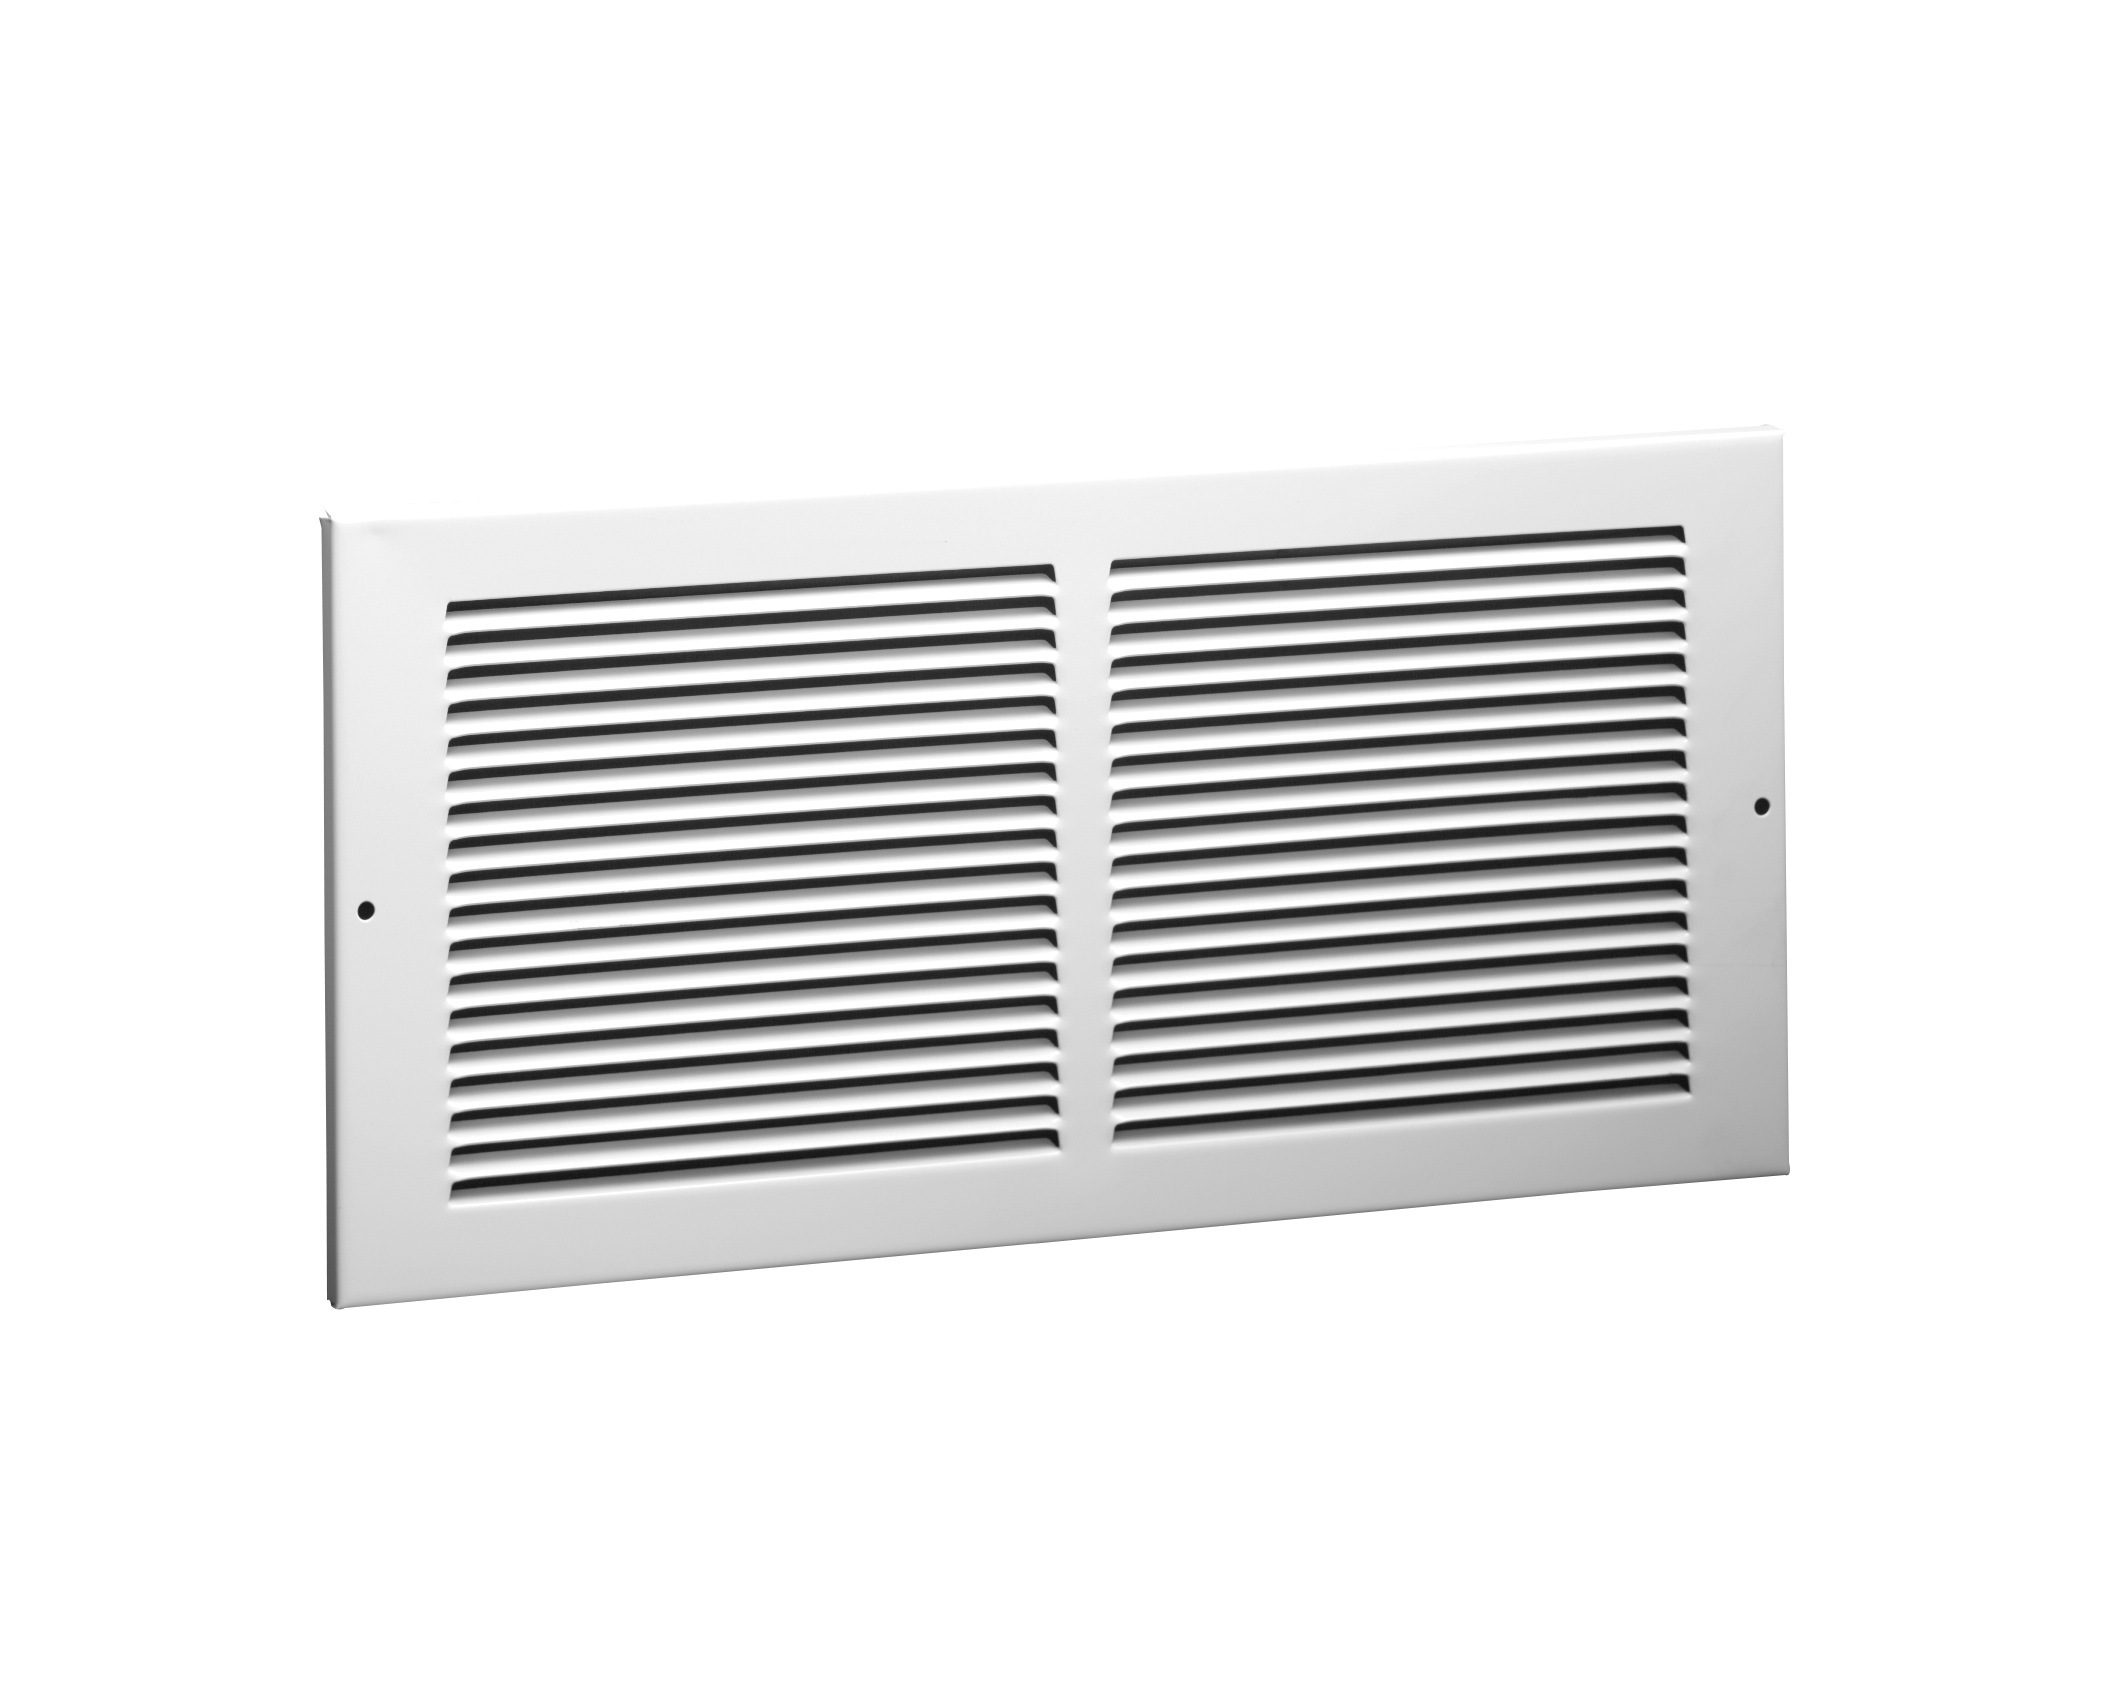 Baseboard Return Air Grille